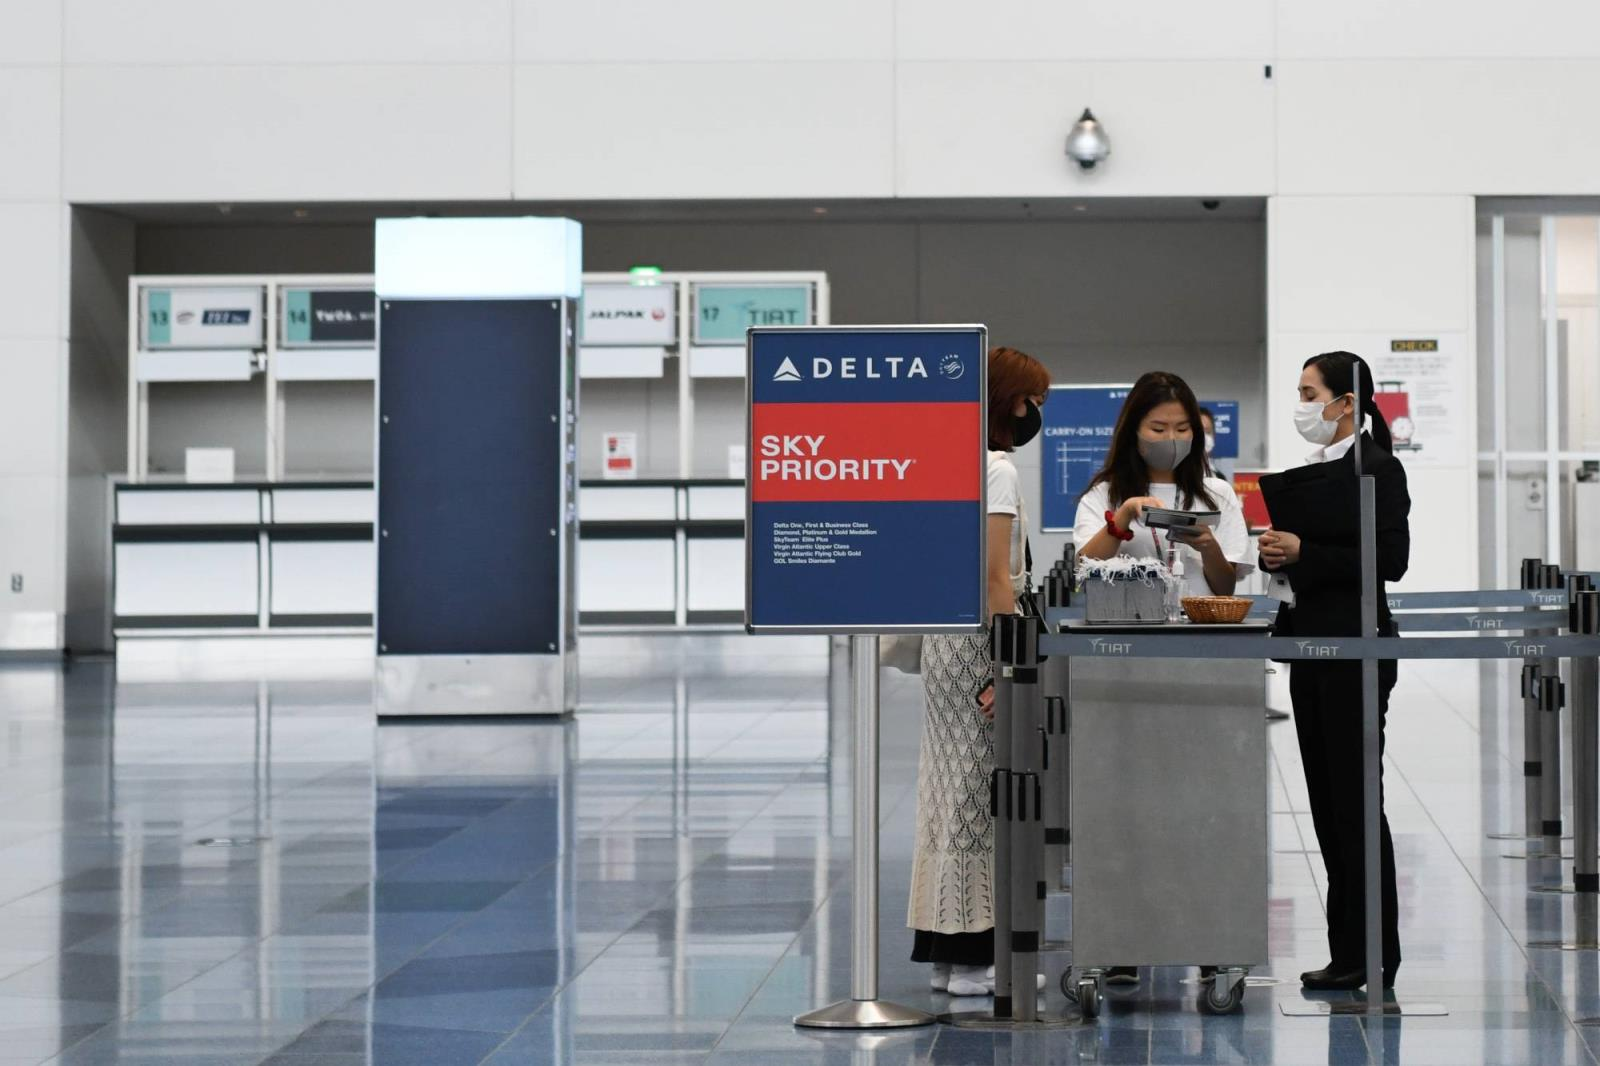 A PASSENGER, LEFT, SPEAKS TO DELTA AIR LINES INC. WORKERS AT HANEDA AIRPORT IN TOKYO, JAPAN, ON TUESDAY, JUNE 28, 2020. Co<em></em>nCERN OVER THE VIRUS SITUATION IN JAPAN IN GROWING AS CASES HAVE SURGED IN RECENT WEEKS. AN OUTBREAK INITIALLY THOUGHT Co<em></em>nFINED TO NIGHTTIME ENTERTAINMENT AREAS IN TOKYO HAS SPREAD TO WORKPLACES AND ACROSS THE COUNTRY. PHOTOGRAPHER: NORIKO HAYASHI/BLOOMBERG